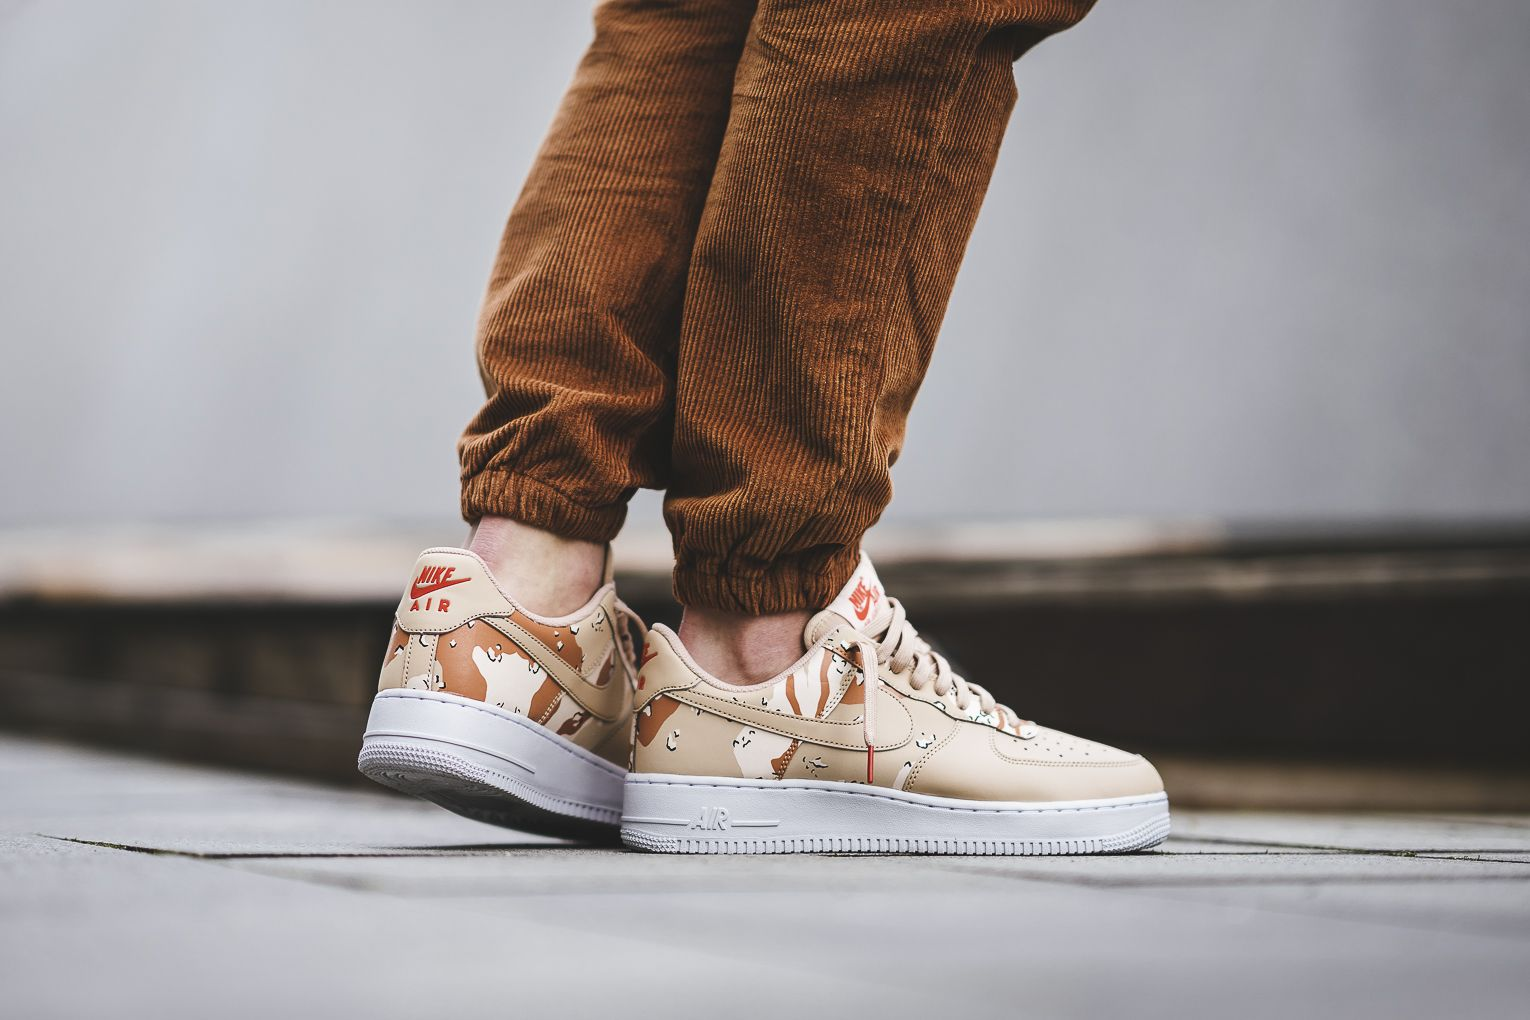 The Nike Air Force 1 Low Country Camo Pack releases on